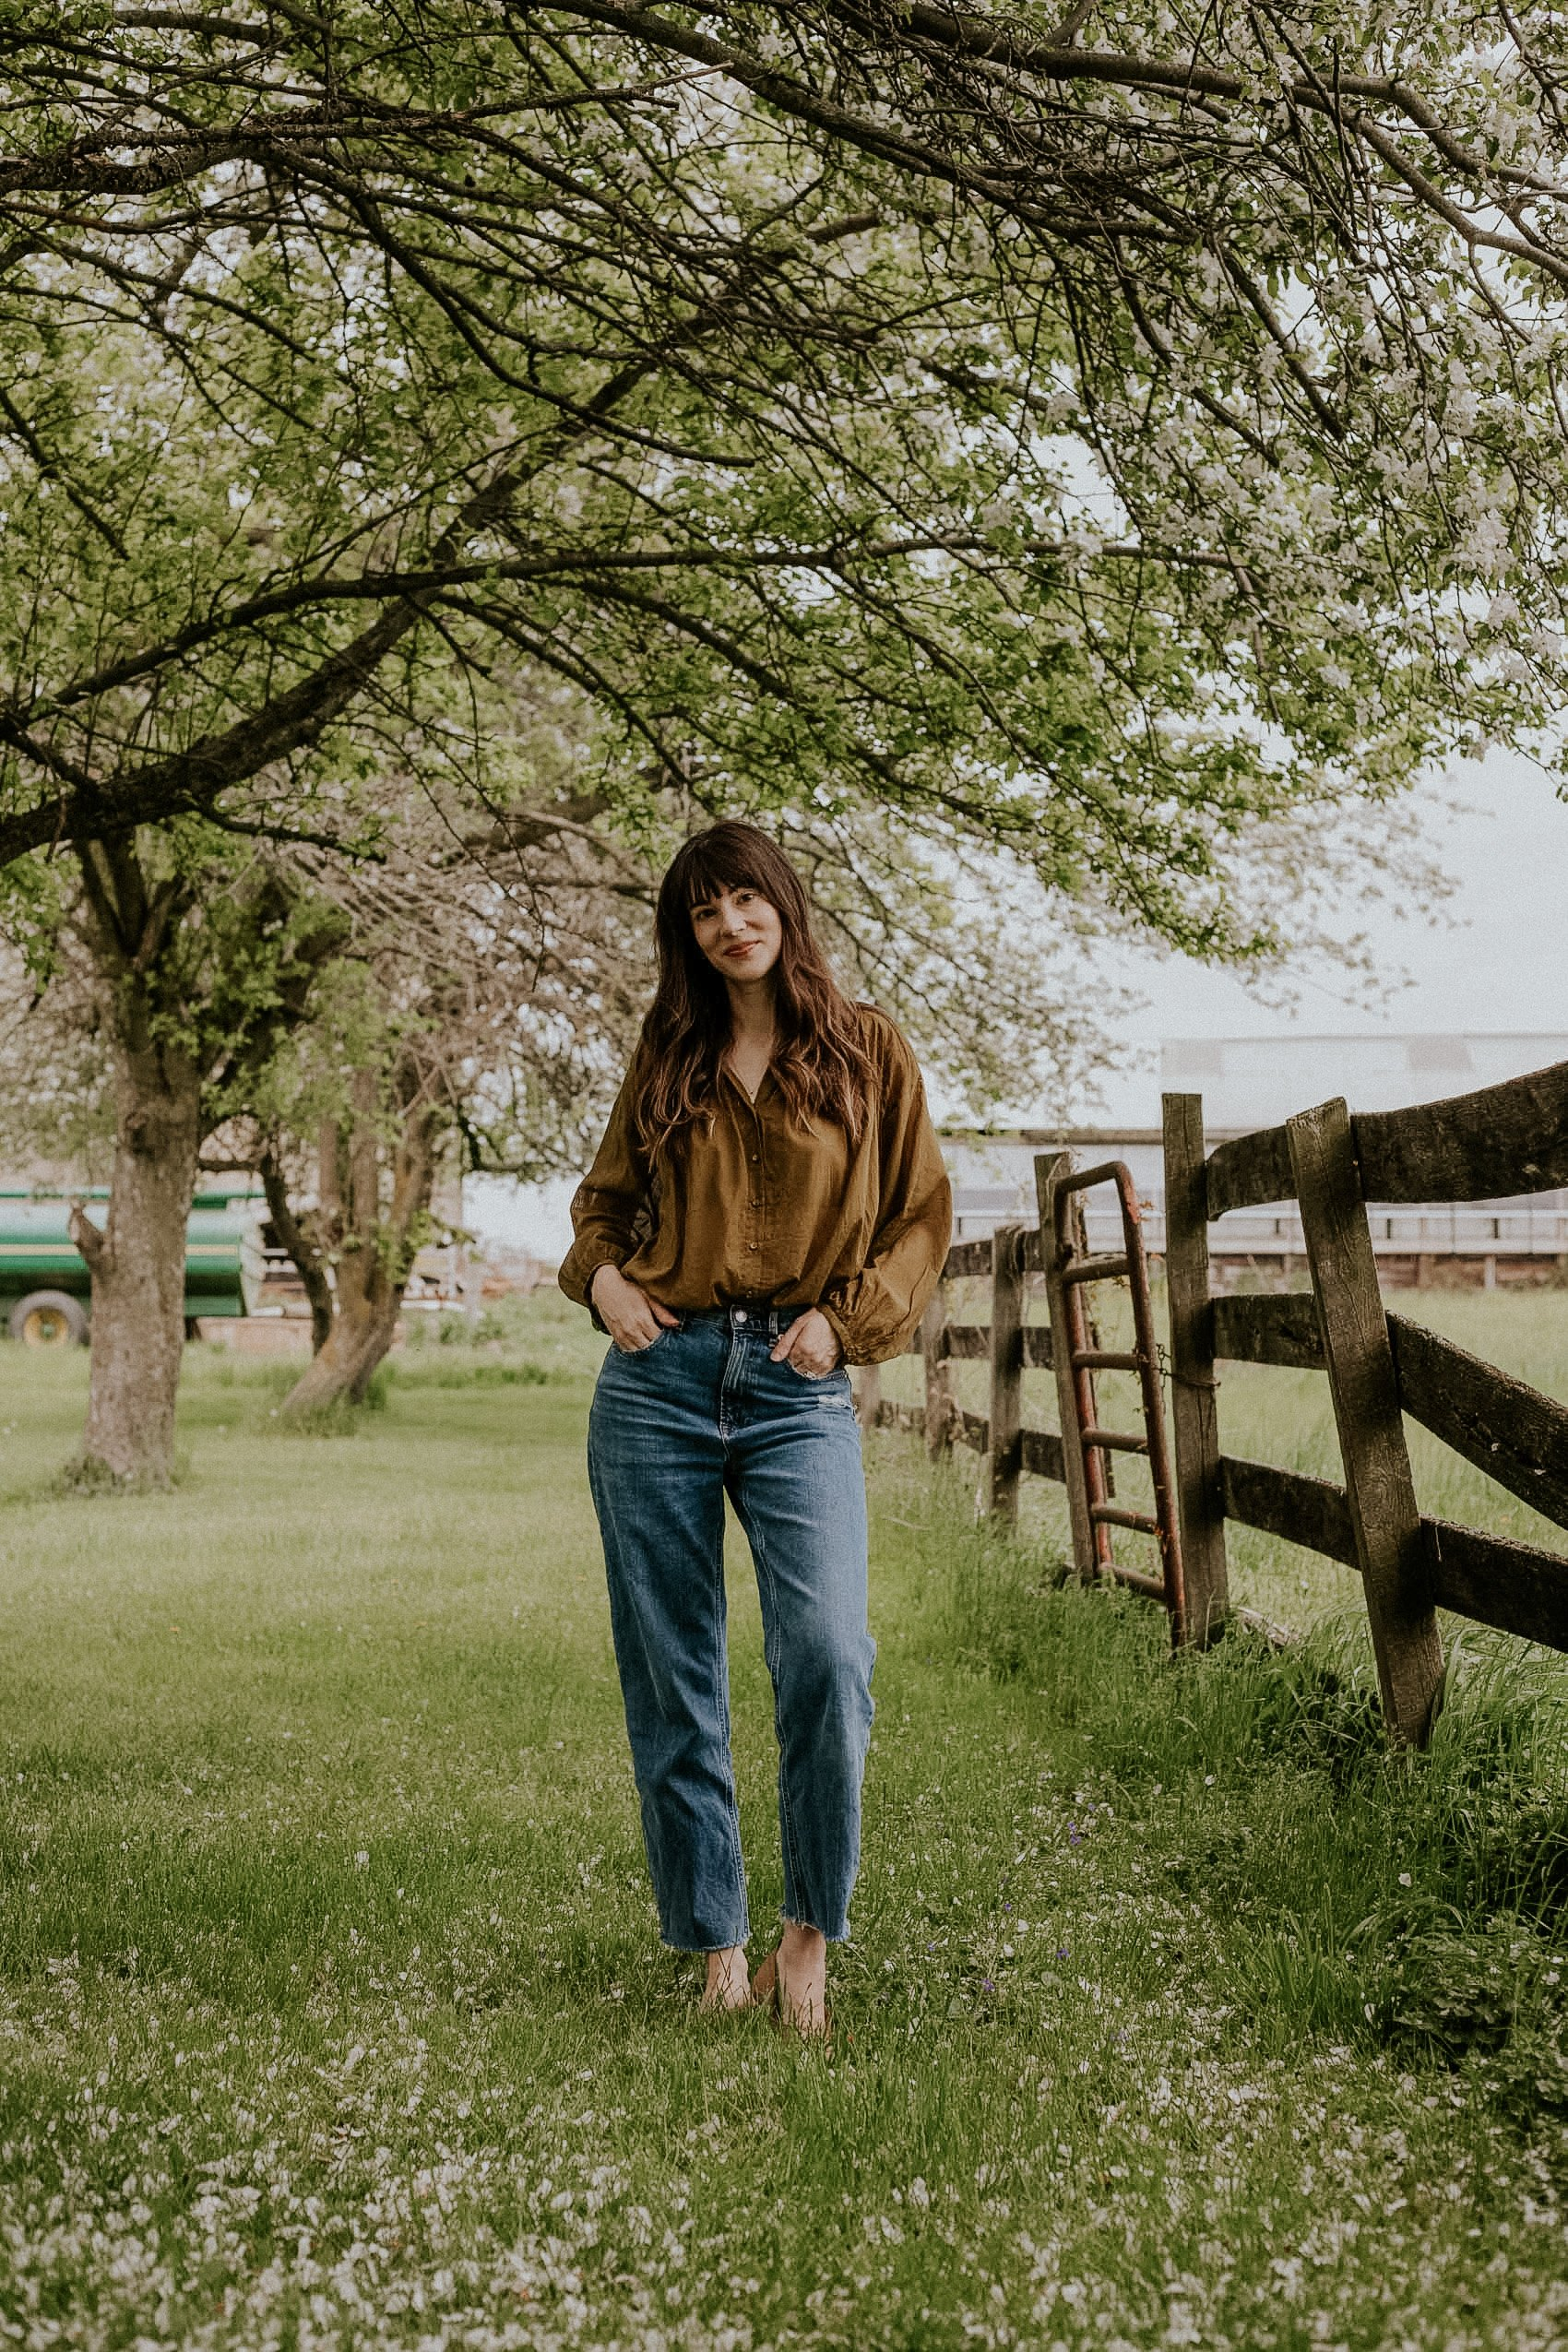 60s inspired outfit featuring the jane blouse from Doen and The Way High jeans from Everlane on woman in field